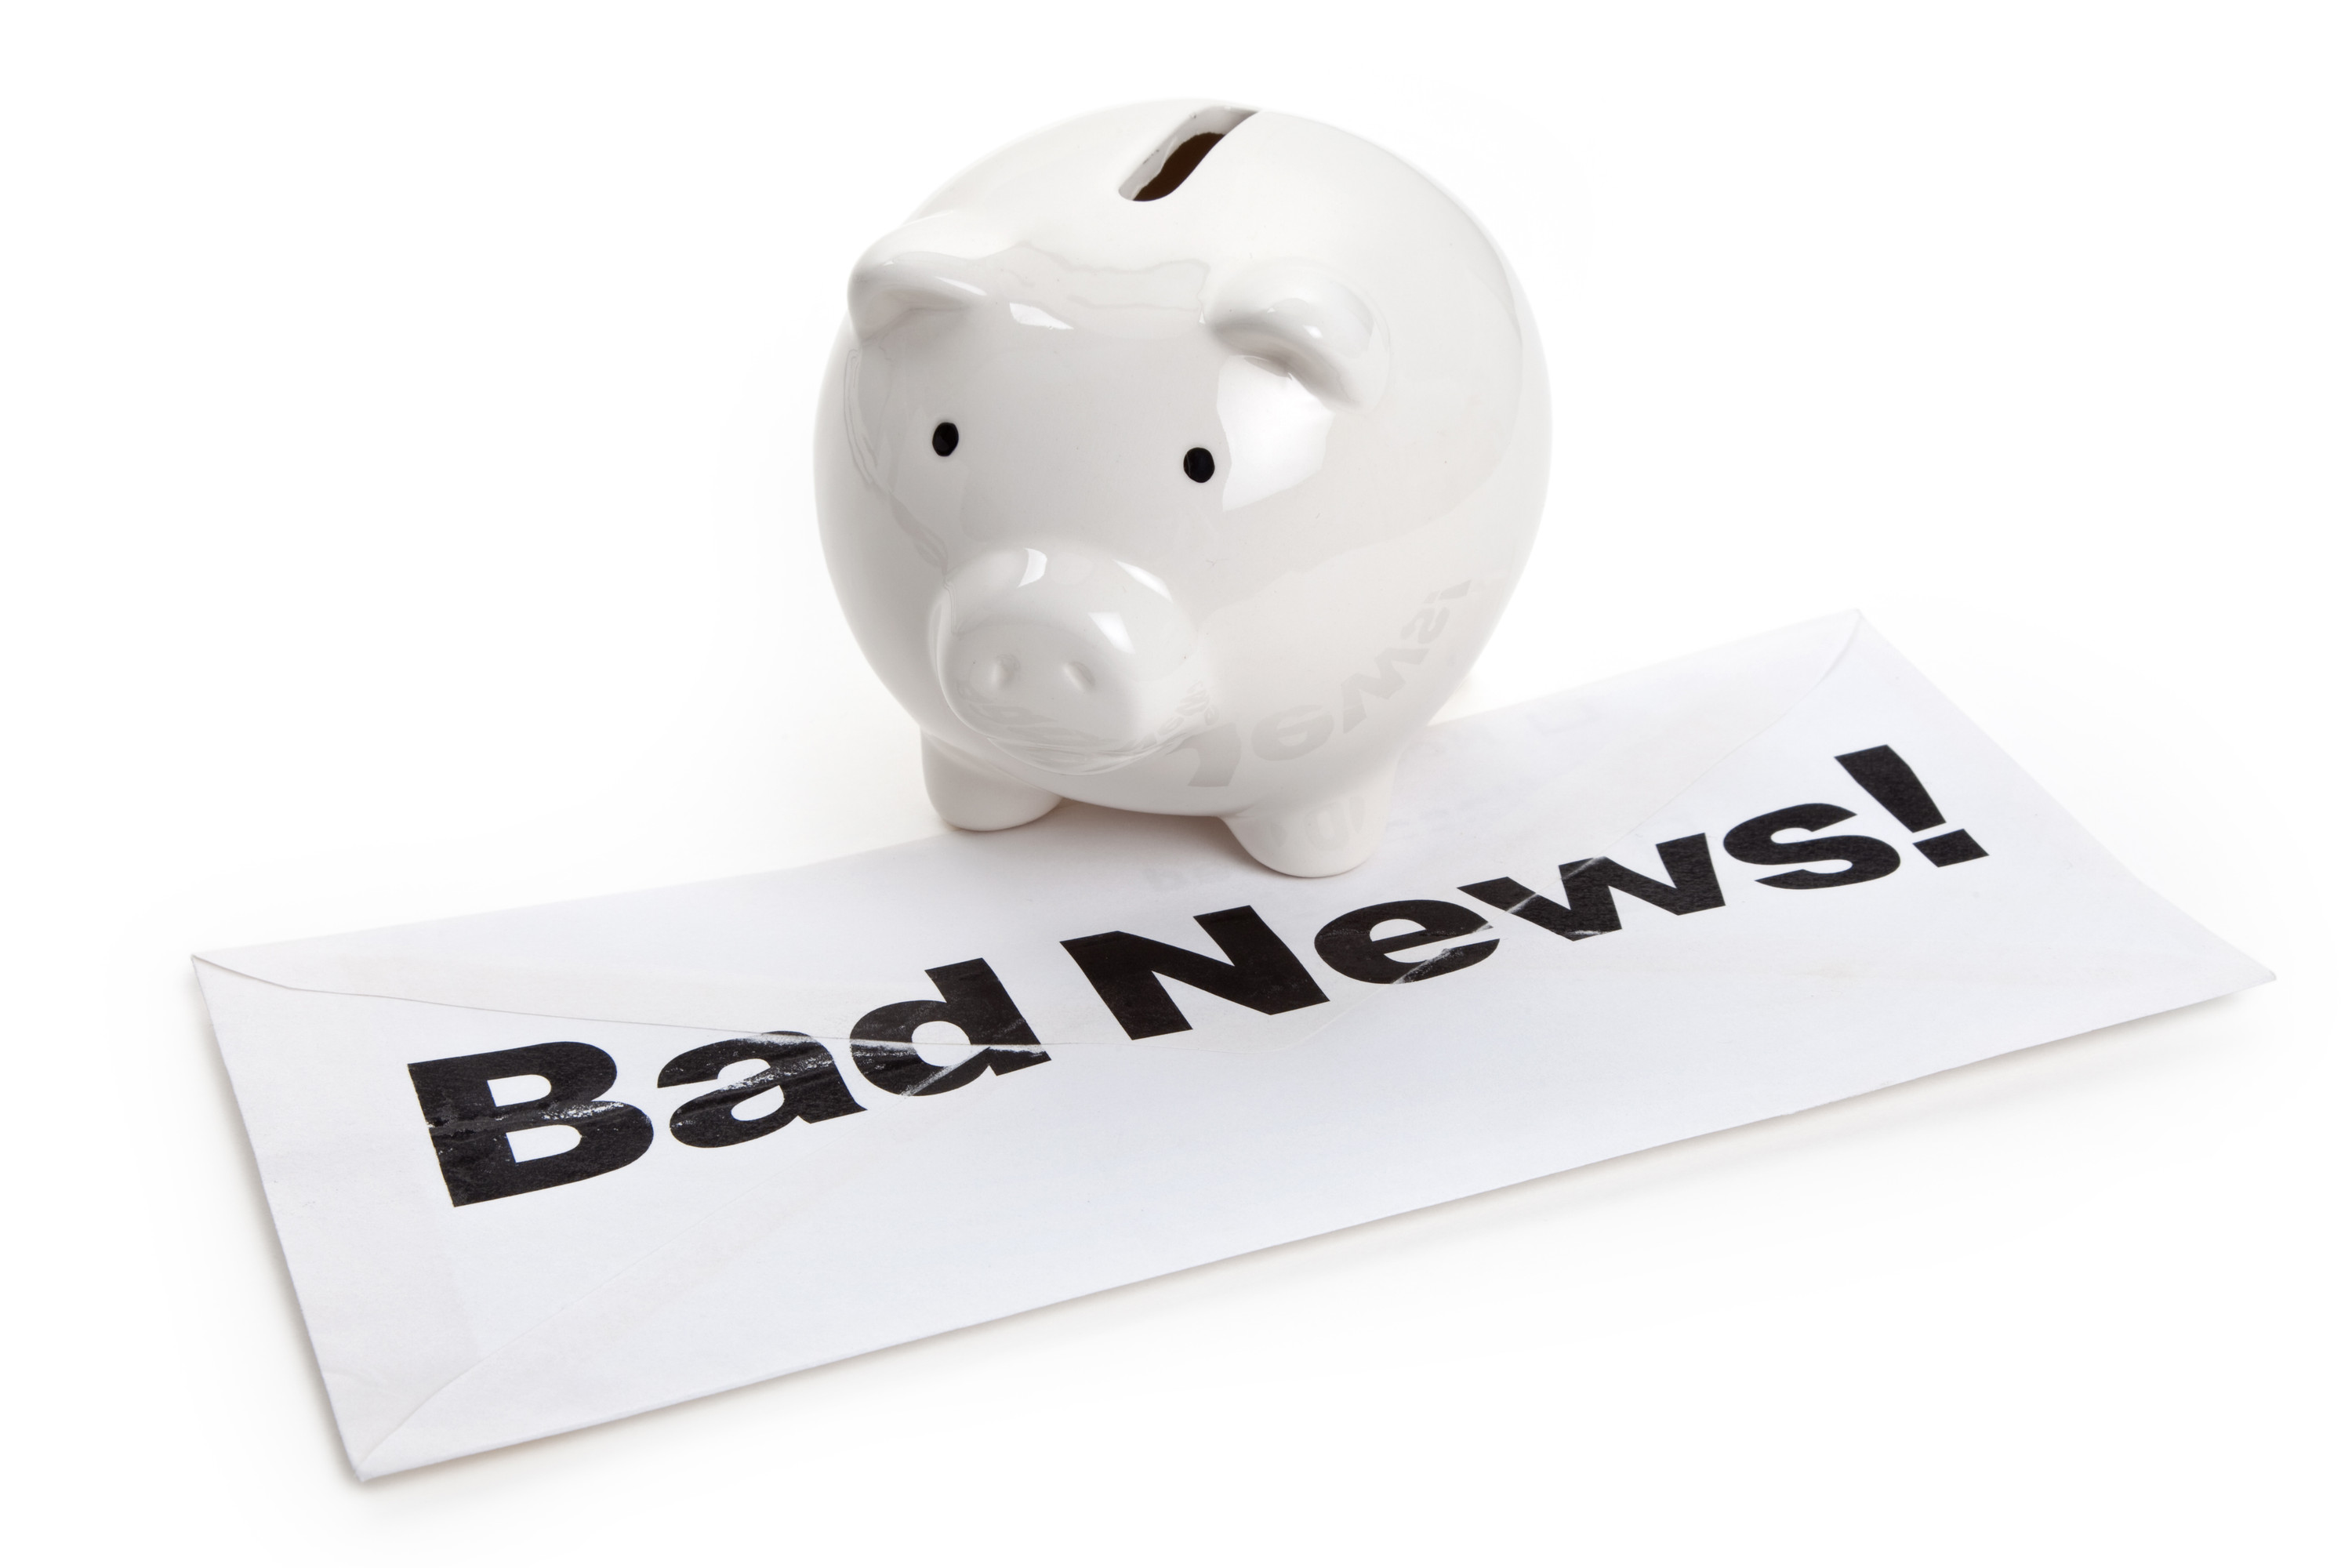 bad news about retirement savings